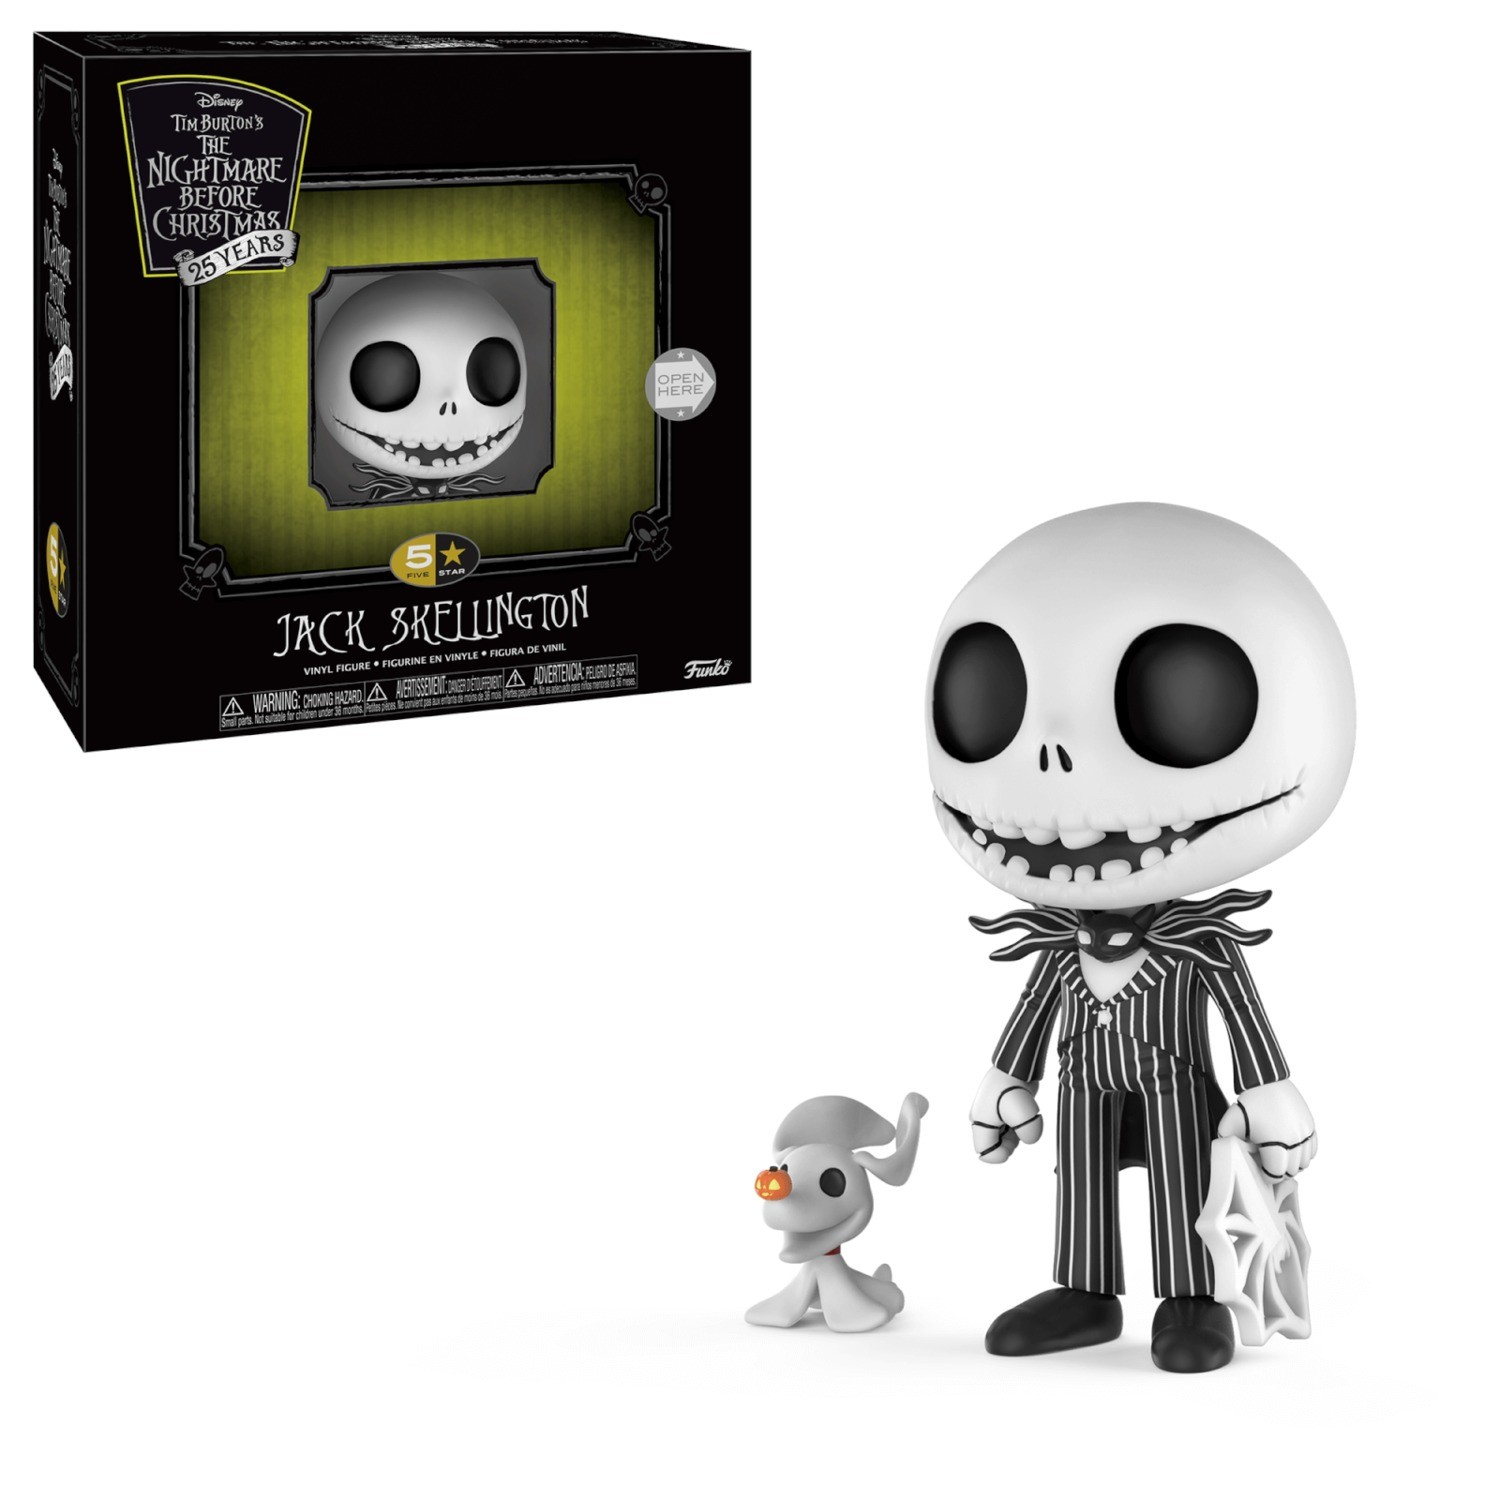 Jack Skellington - The Nightmare Before Christmas action figure 32852